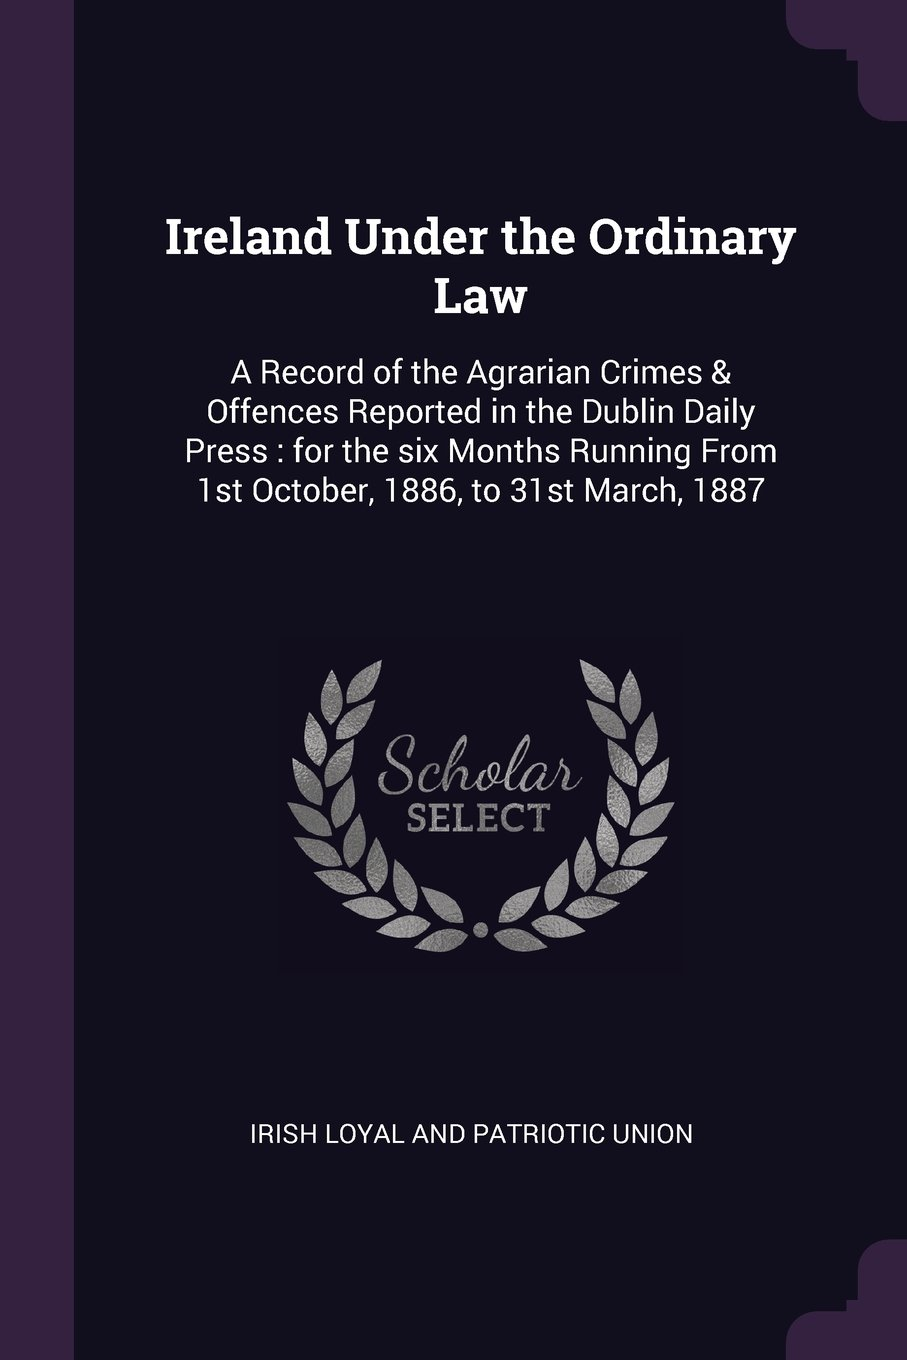 Download Ireland Under the Ordinary Law: A Record of the Agrarian Crimes & Offences Reported in the Dublin Daily Press : for the six Months Running From 1st October, 1886, to 31st March, 1887 ebook